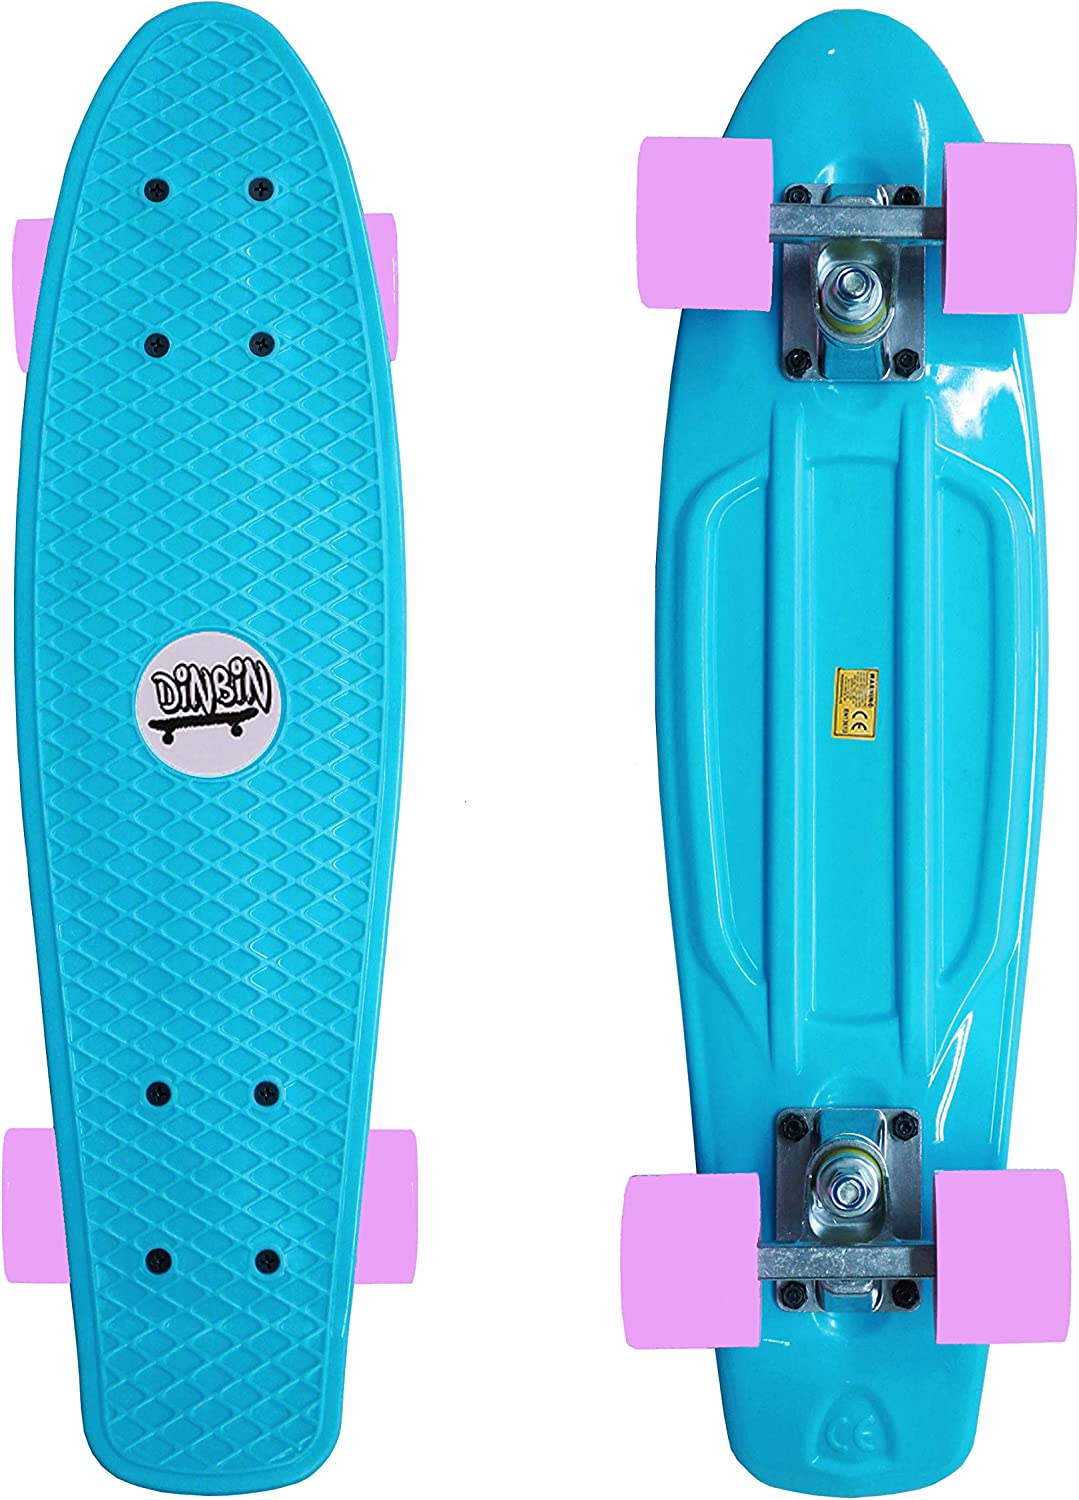 DINBIN Complete Highly Flexible Plastic Cruiser Board / US